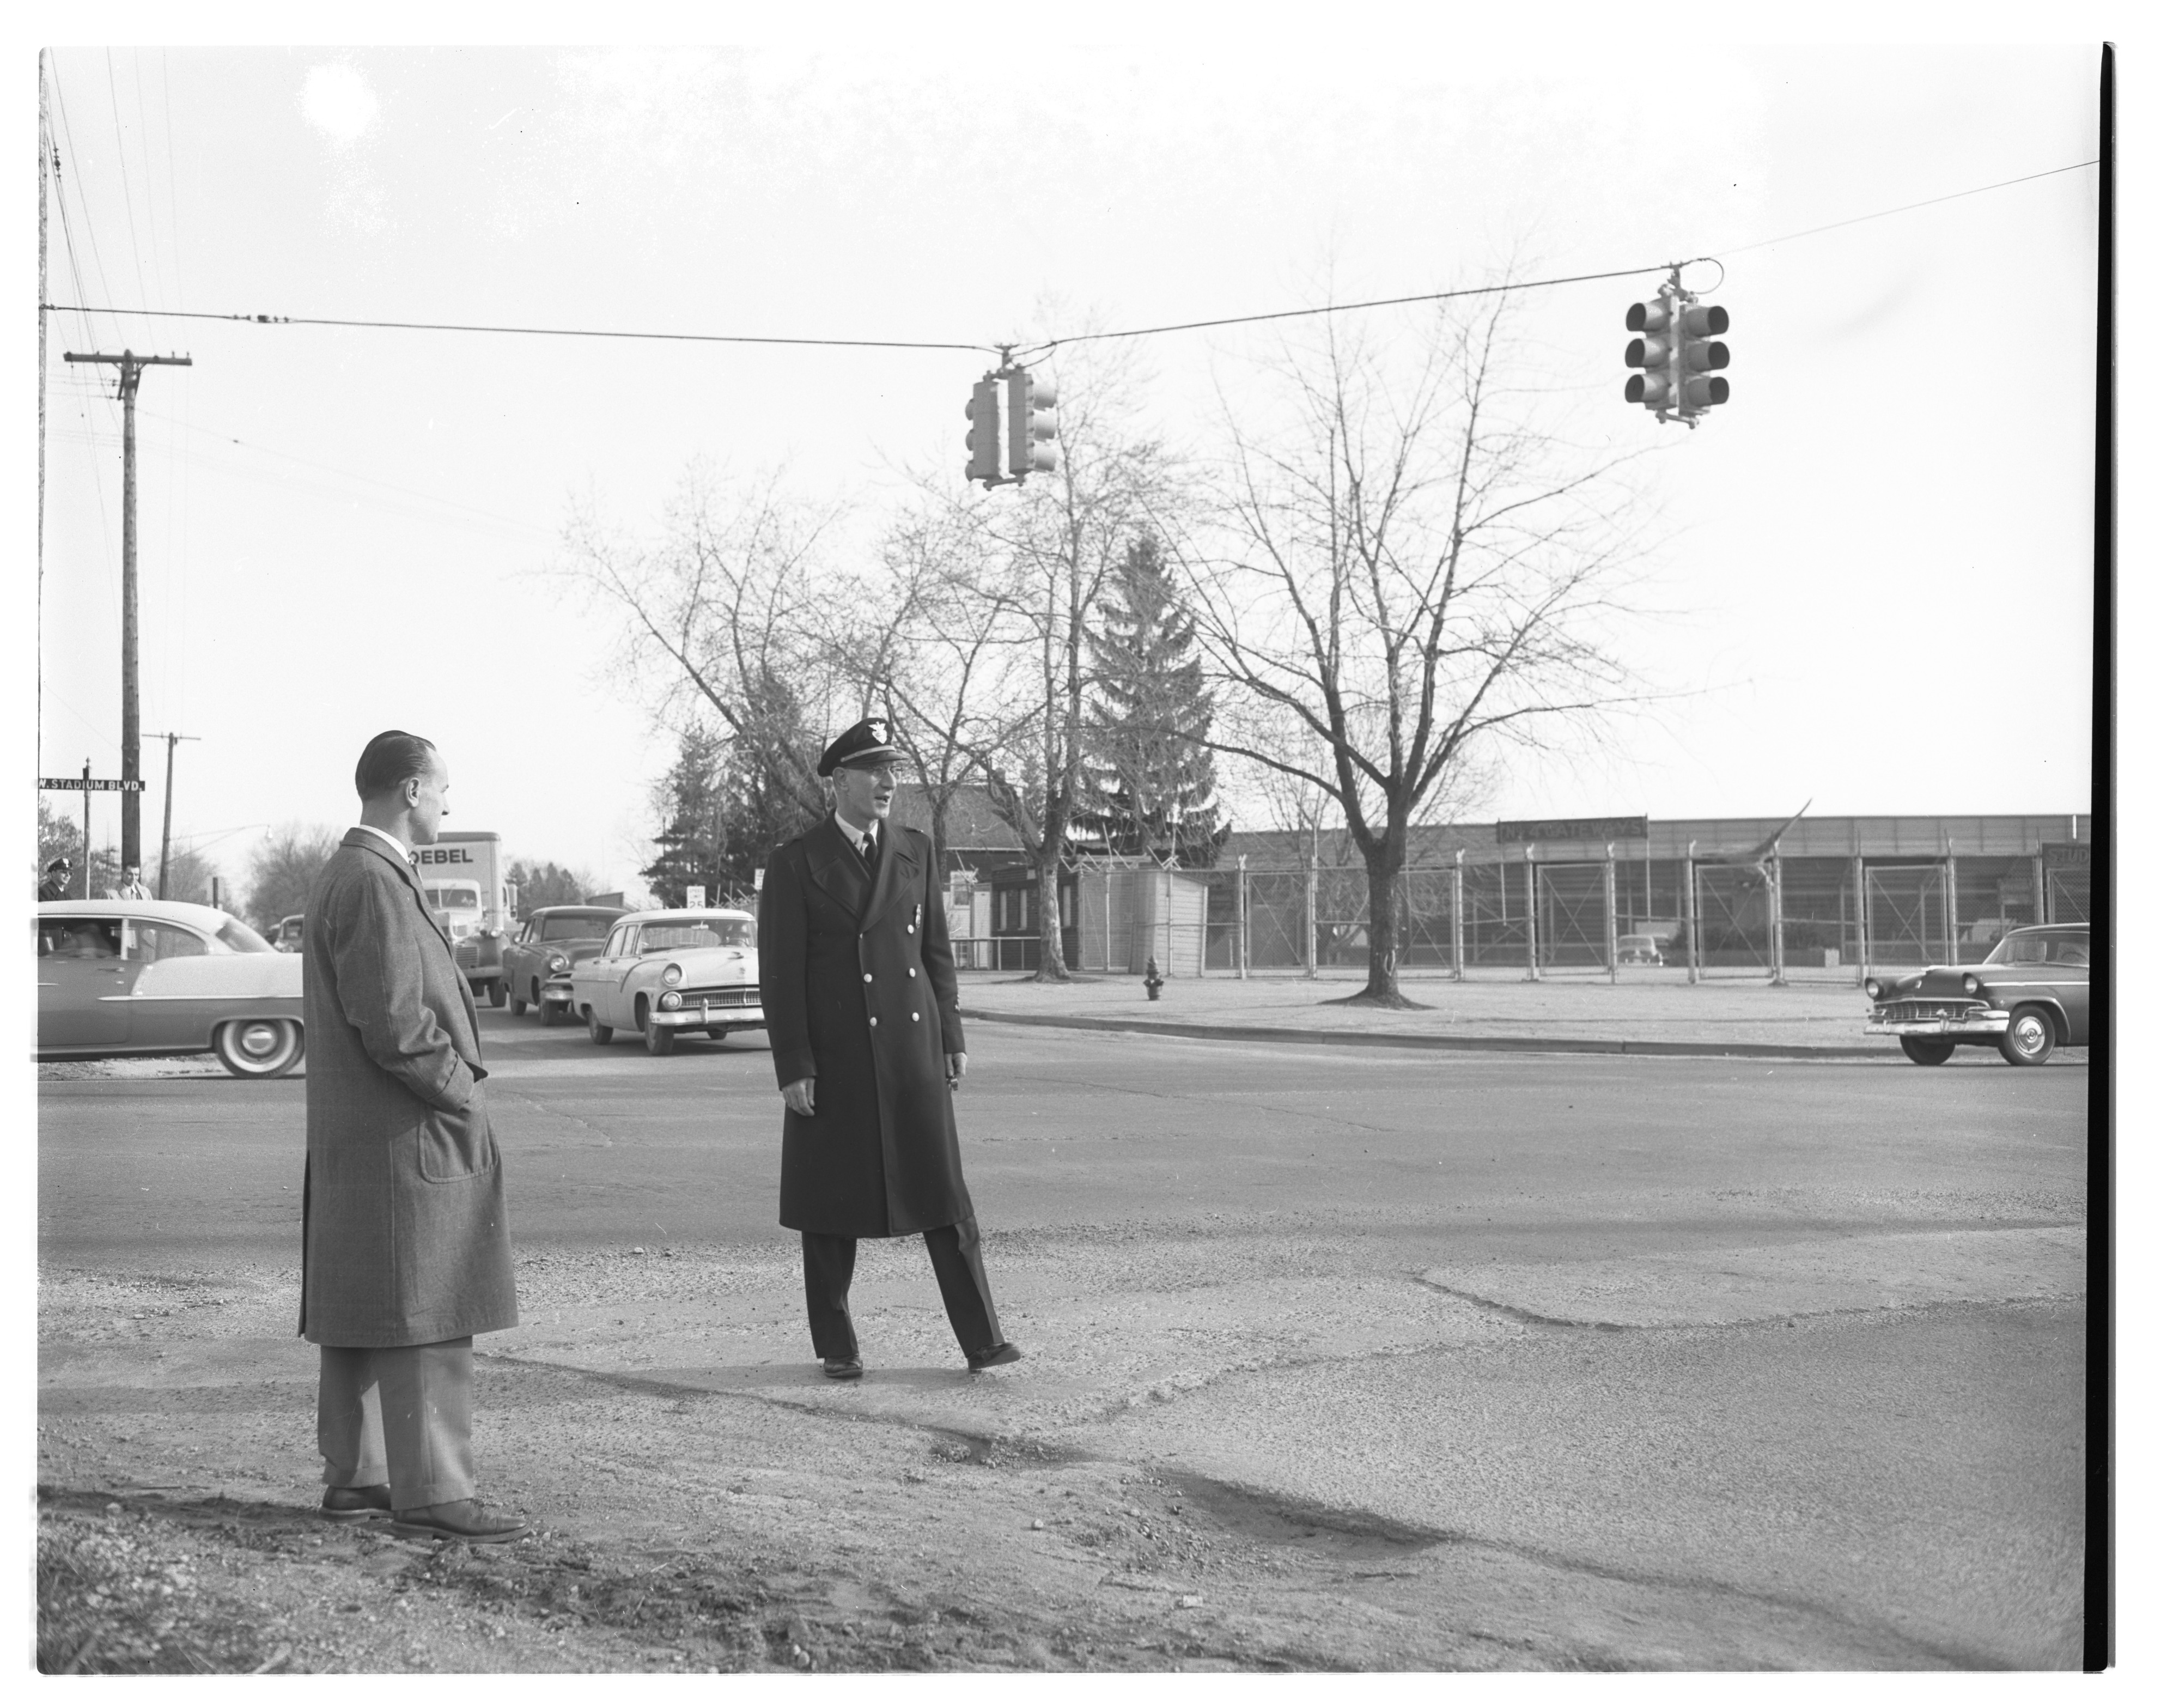 Traffic Control On Opening Day At New Ann Arbor High School, April 1956 image